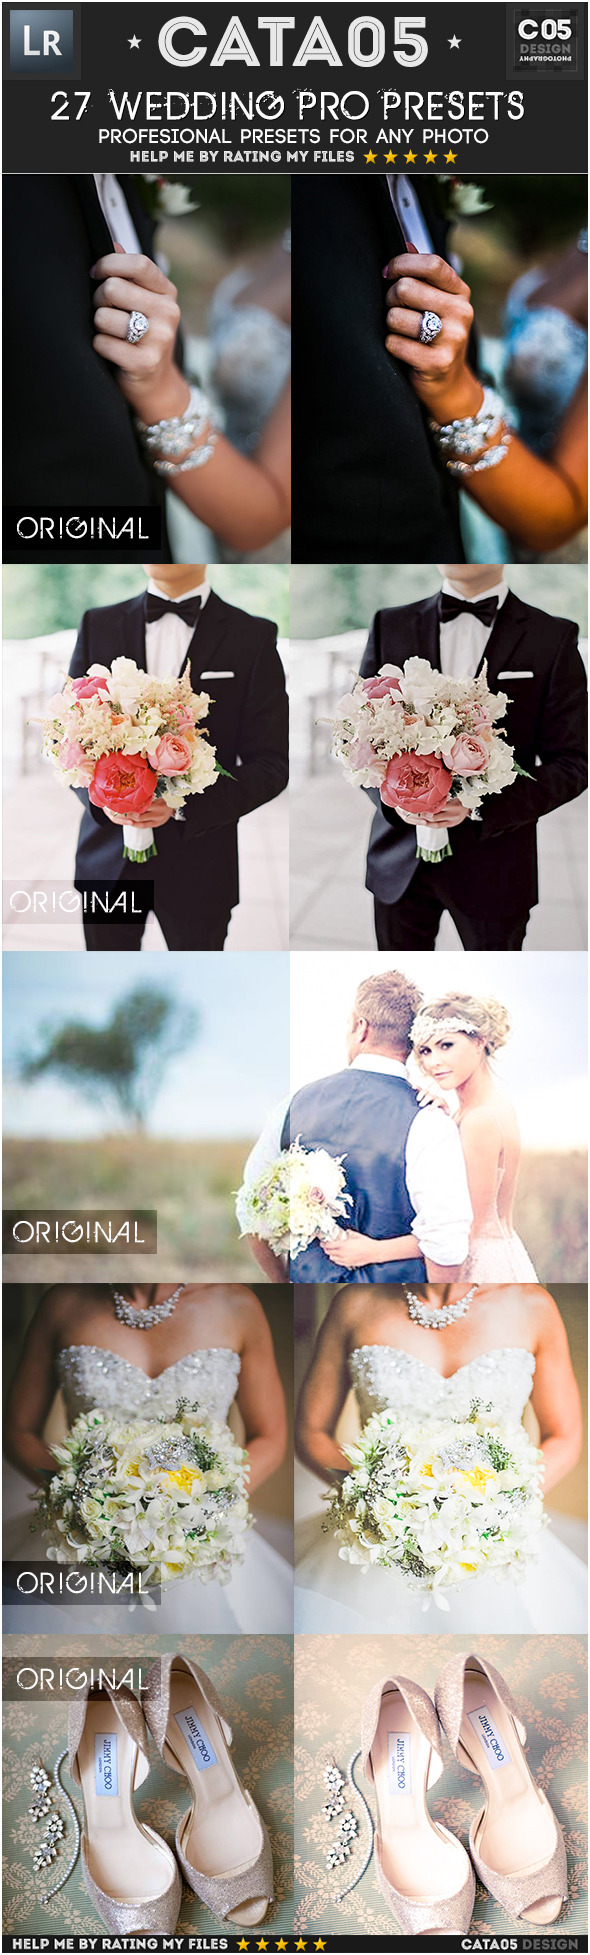 27 Wedding Pro Presets - Wedding Lightroom Presets